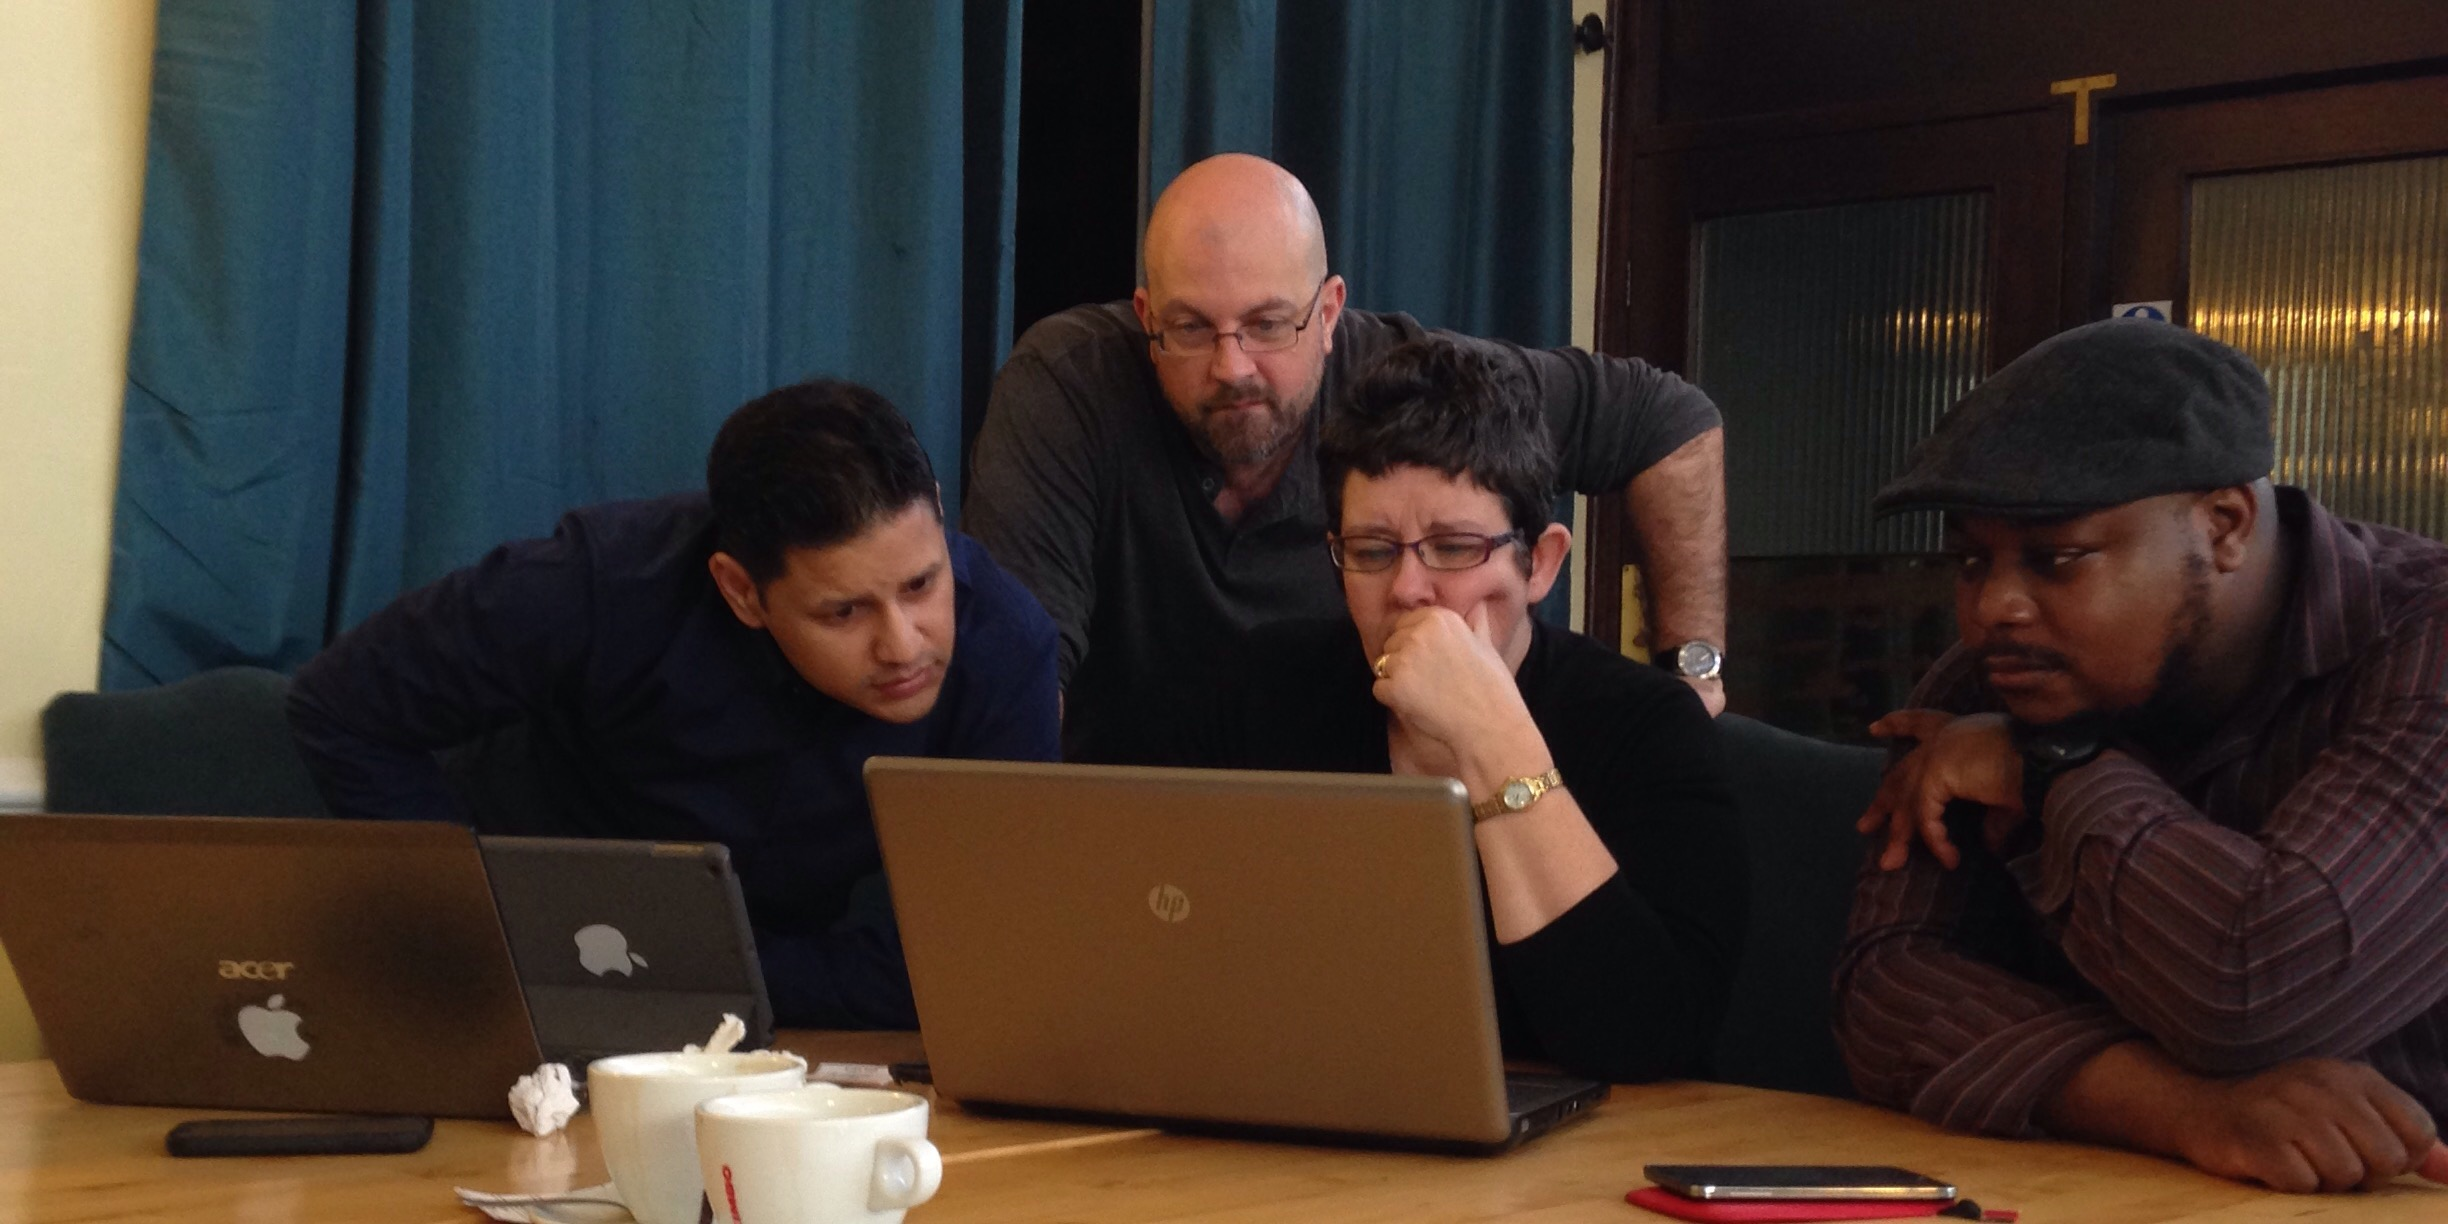 Photo of Deepak, Lorraine and Carl, huddled around a laptop in deep concentration, with Jon behind them leaning in